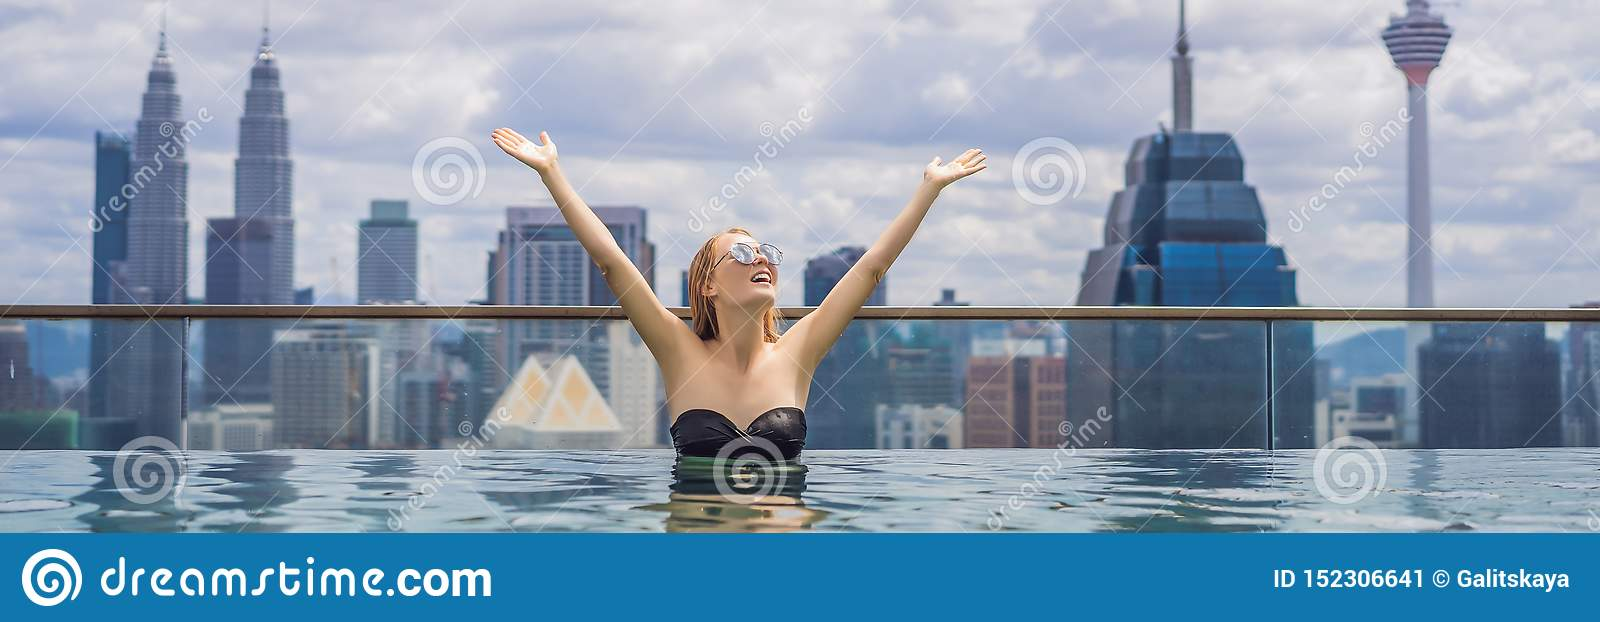 Young woman in outdoor swimming pool with city view in blue sky. Rich people BANNER, LONG FORMAT